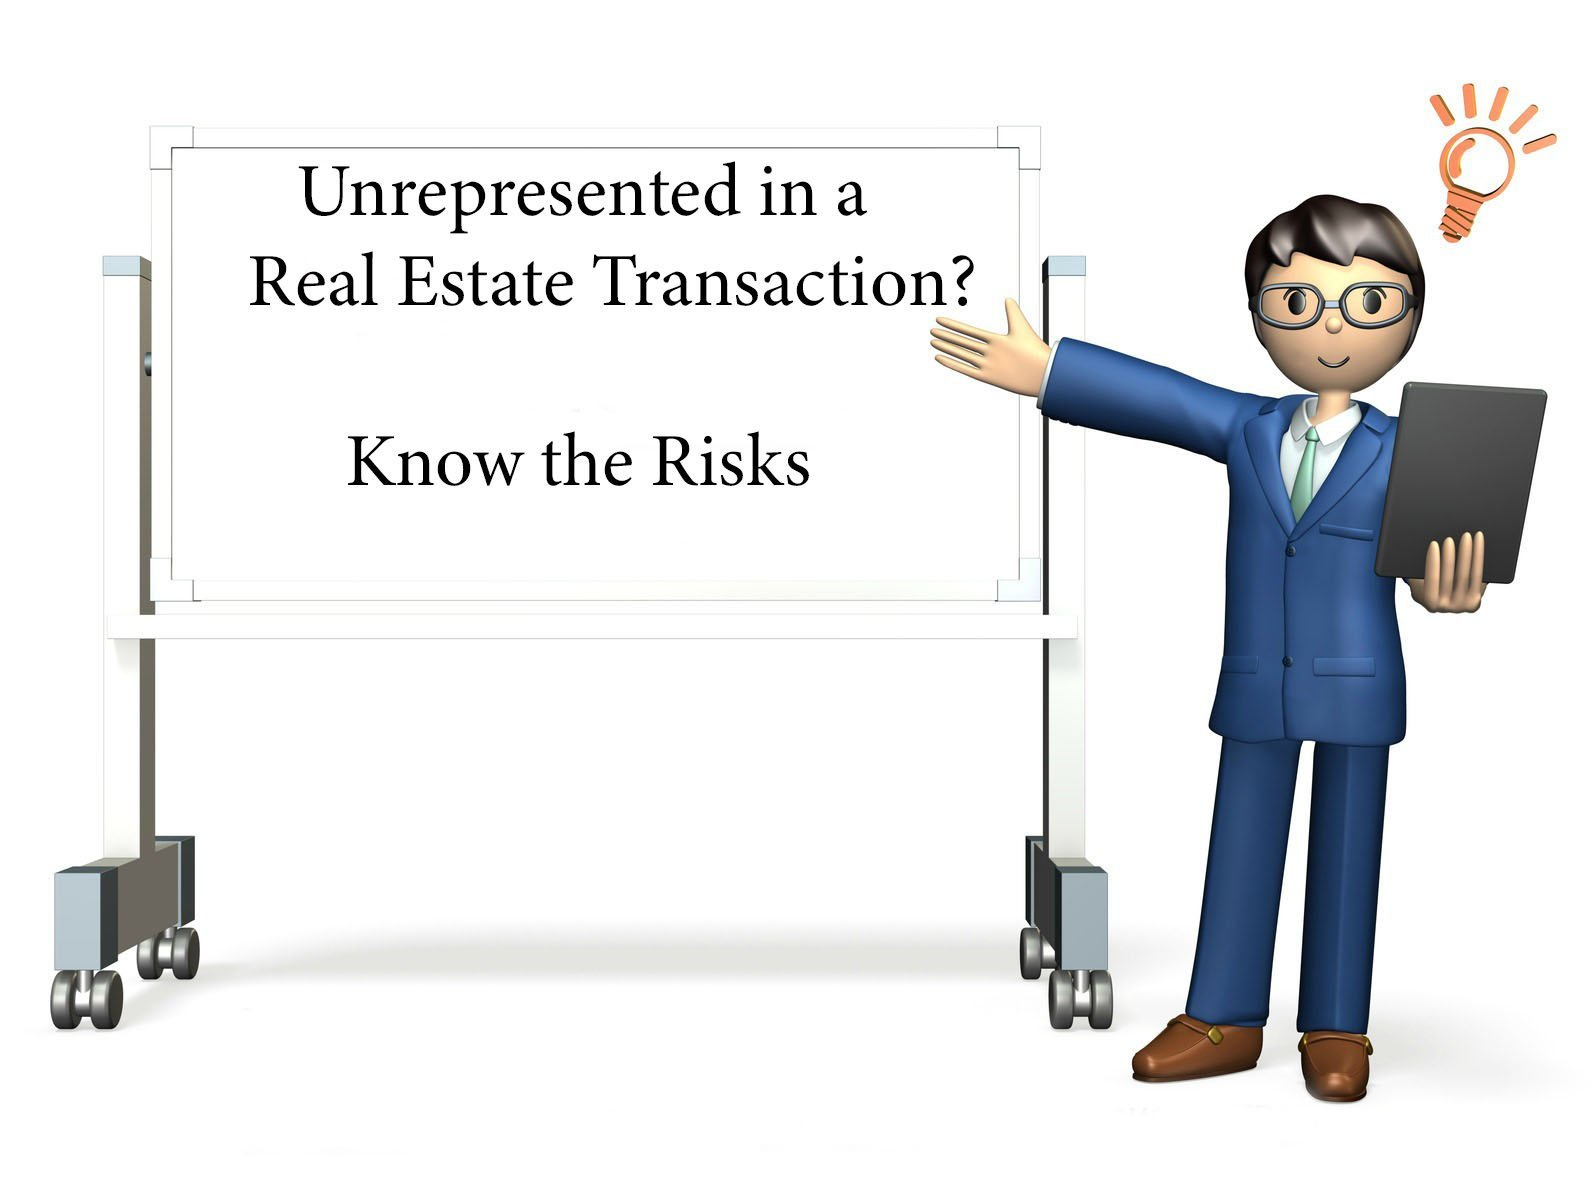 KNow the risks of being unrepresented